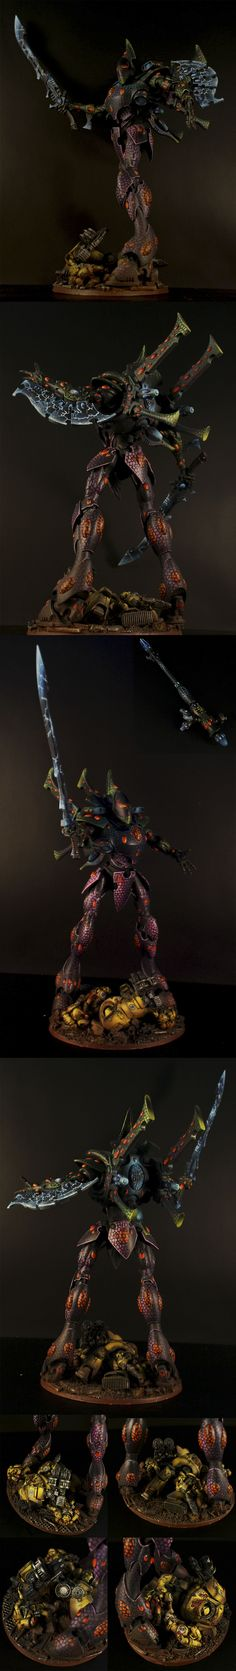 40k - Eldar Wraithknight by Shepard